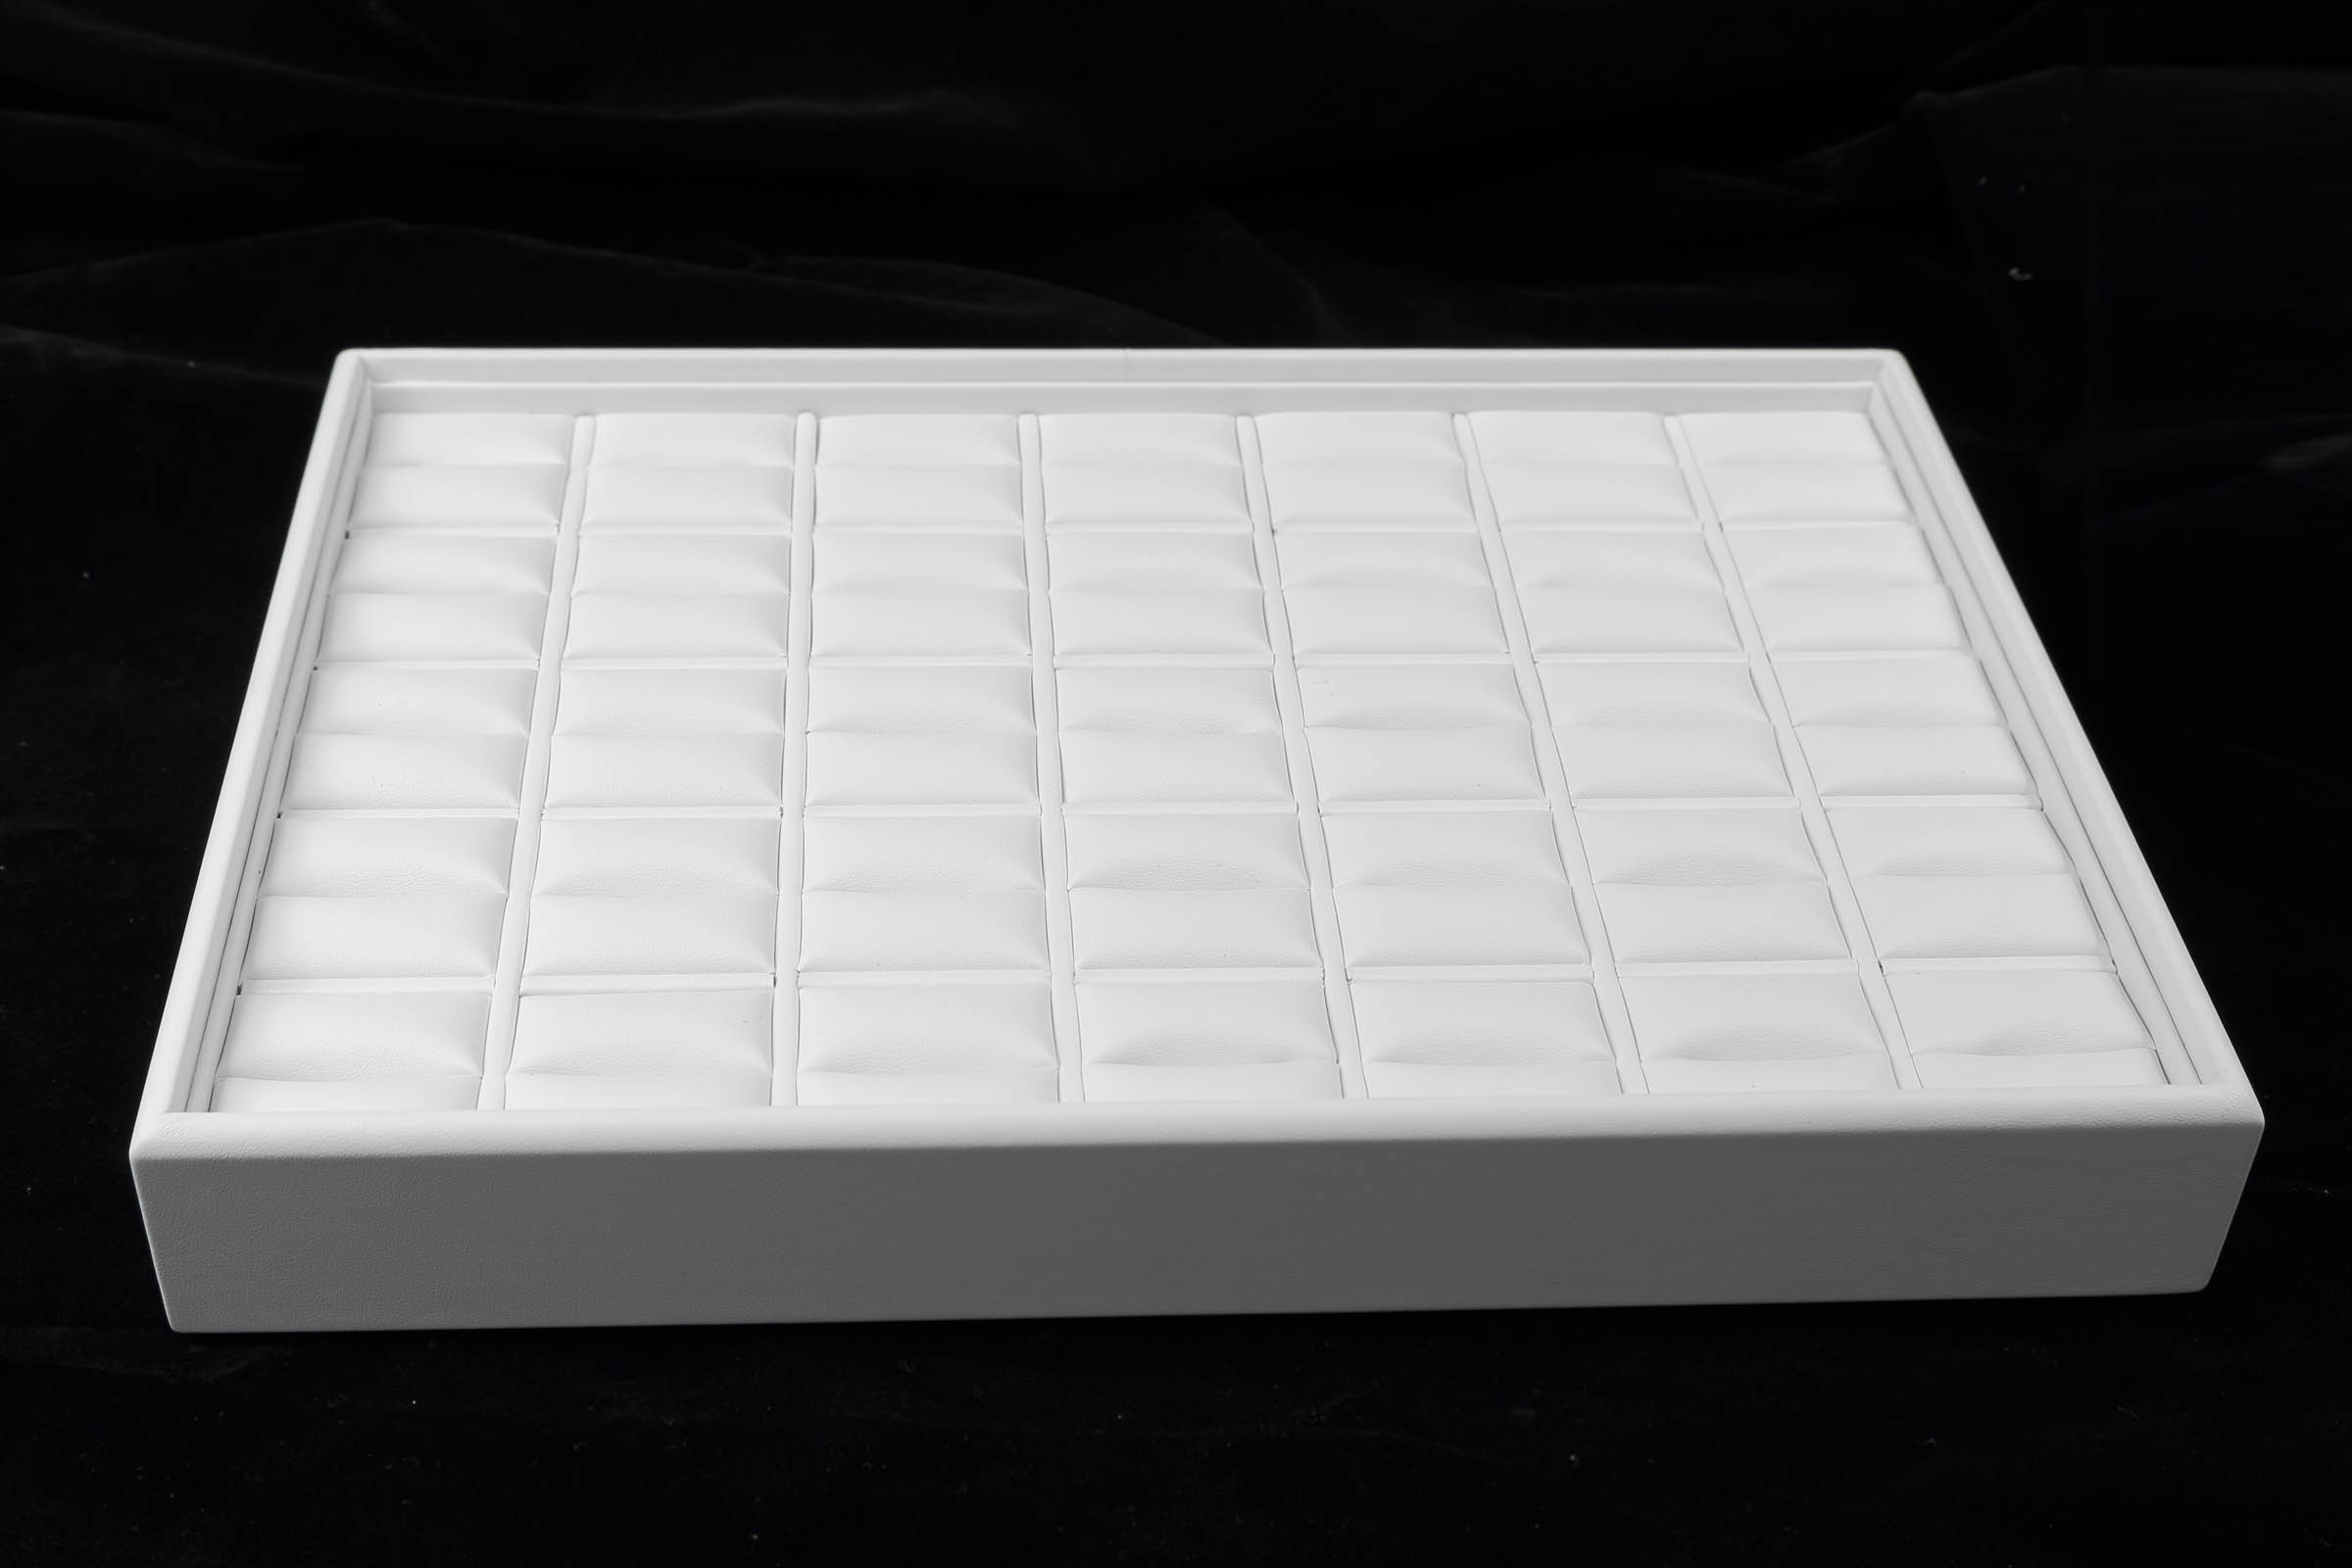 1 x White Premium Soft Padded Leatherette Ring Display Tray. Stackable. Dim 315(w) x 225(d) x 45mm(h).